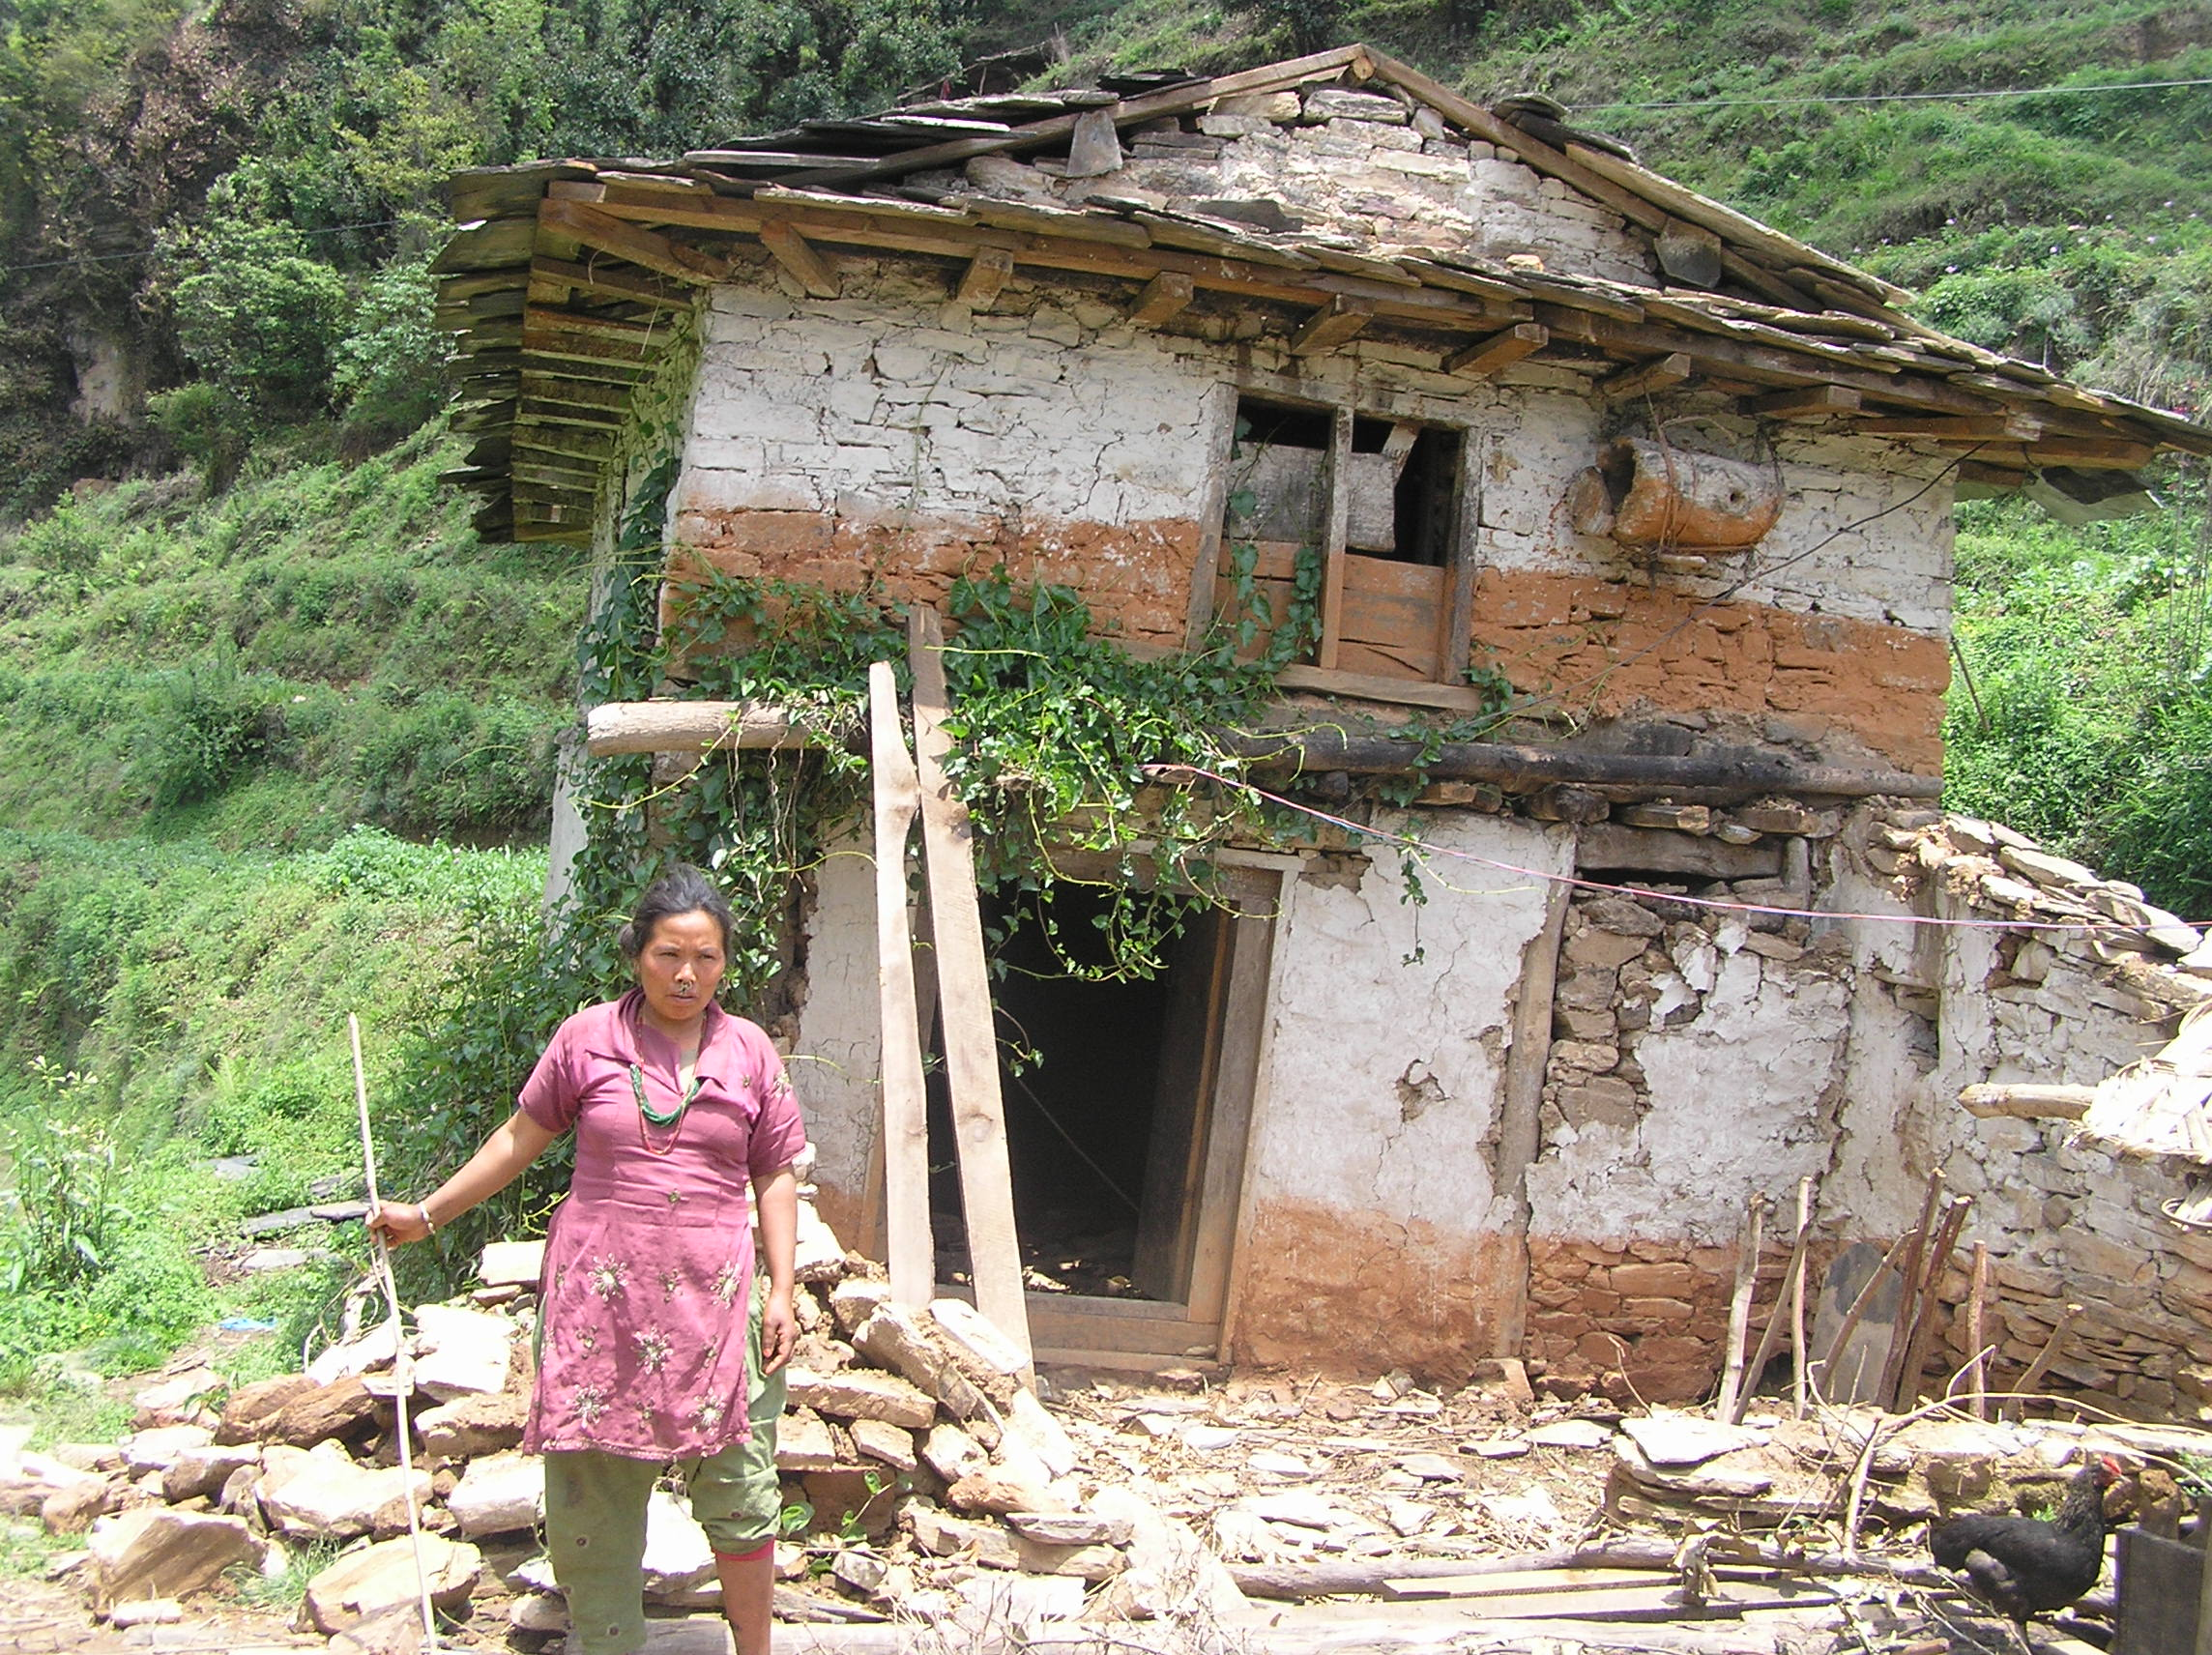 Phulmaya-Tamang-of-Kopche-stands-infront-of-her-damaged-house-who-was-also-injured-during-earthquake